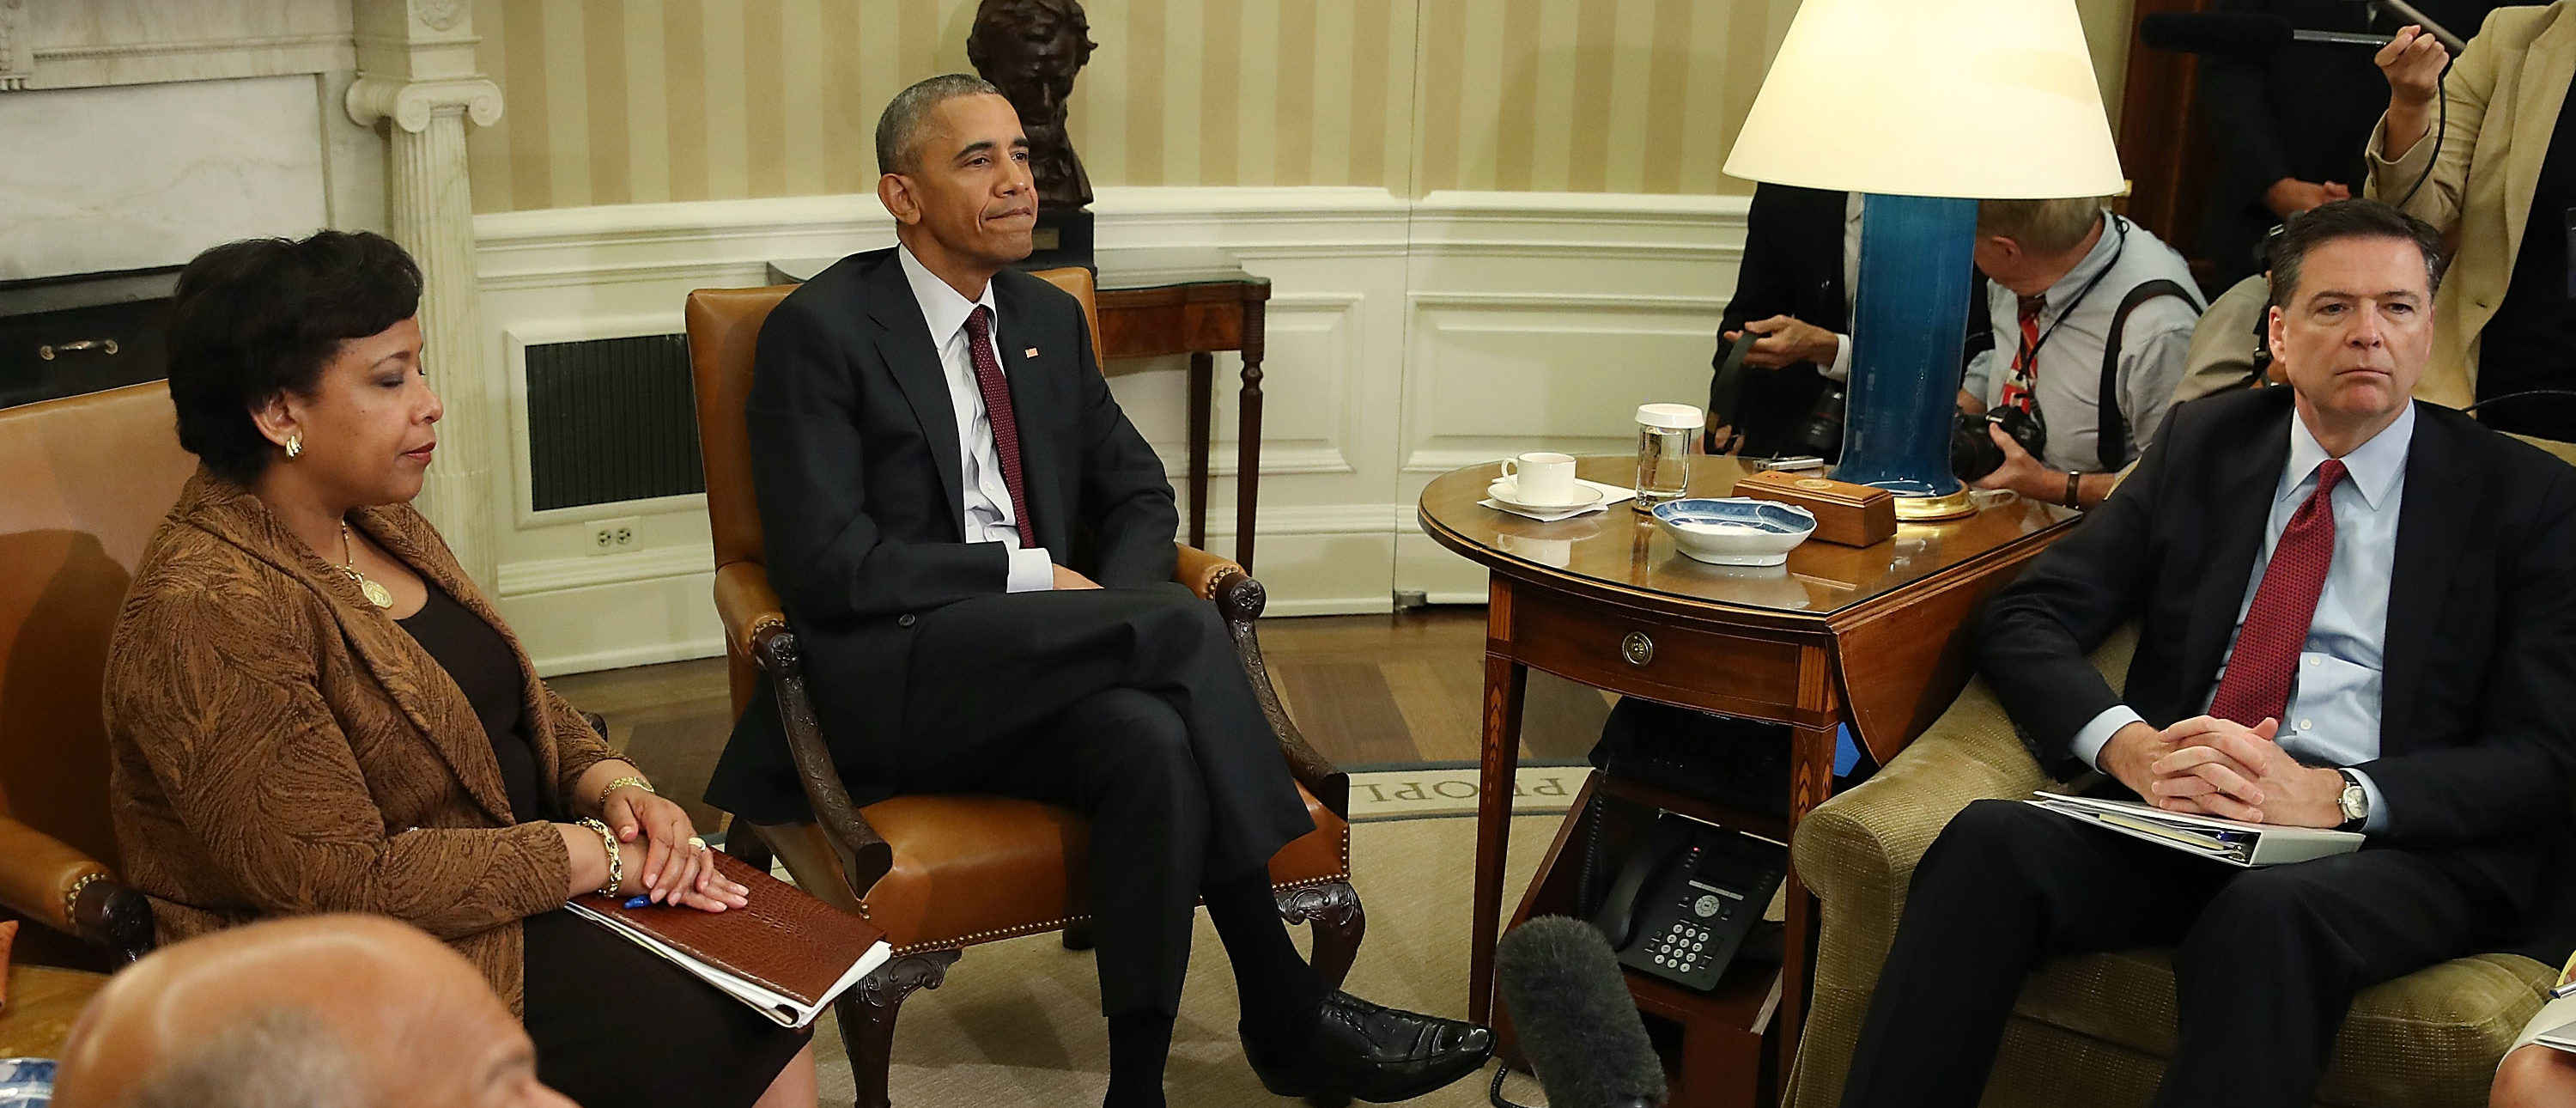 WASHINGTON, DC - JULY 19:  U.S. President Barack Obama (C) speaks to the media after meeting with Attorney General Loretta Lynch (L) and FBI Director James Comey in the Oval Office at the White House July 19, 2016 in Washington, DC. The president was briefed  following the July 7 sniper killings of five Dallas police officers working a protest and Sunday's killing of three police officers in Baton Rouge, Louisiana.  (Photo by Mark Wilson/Getty Images)